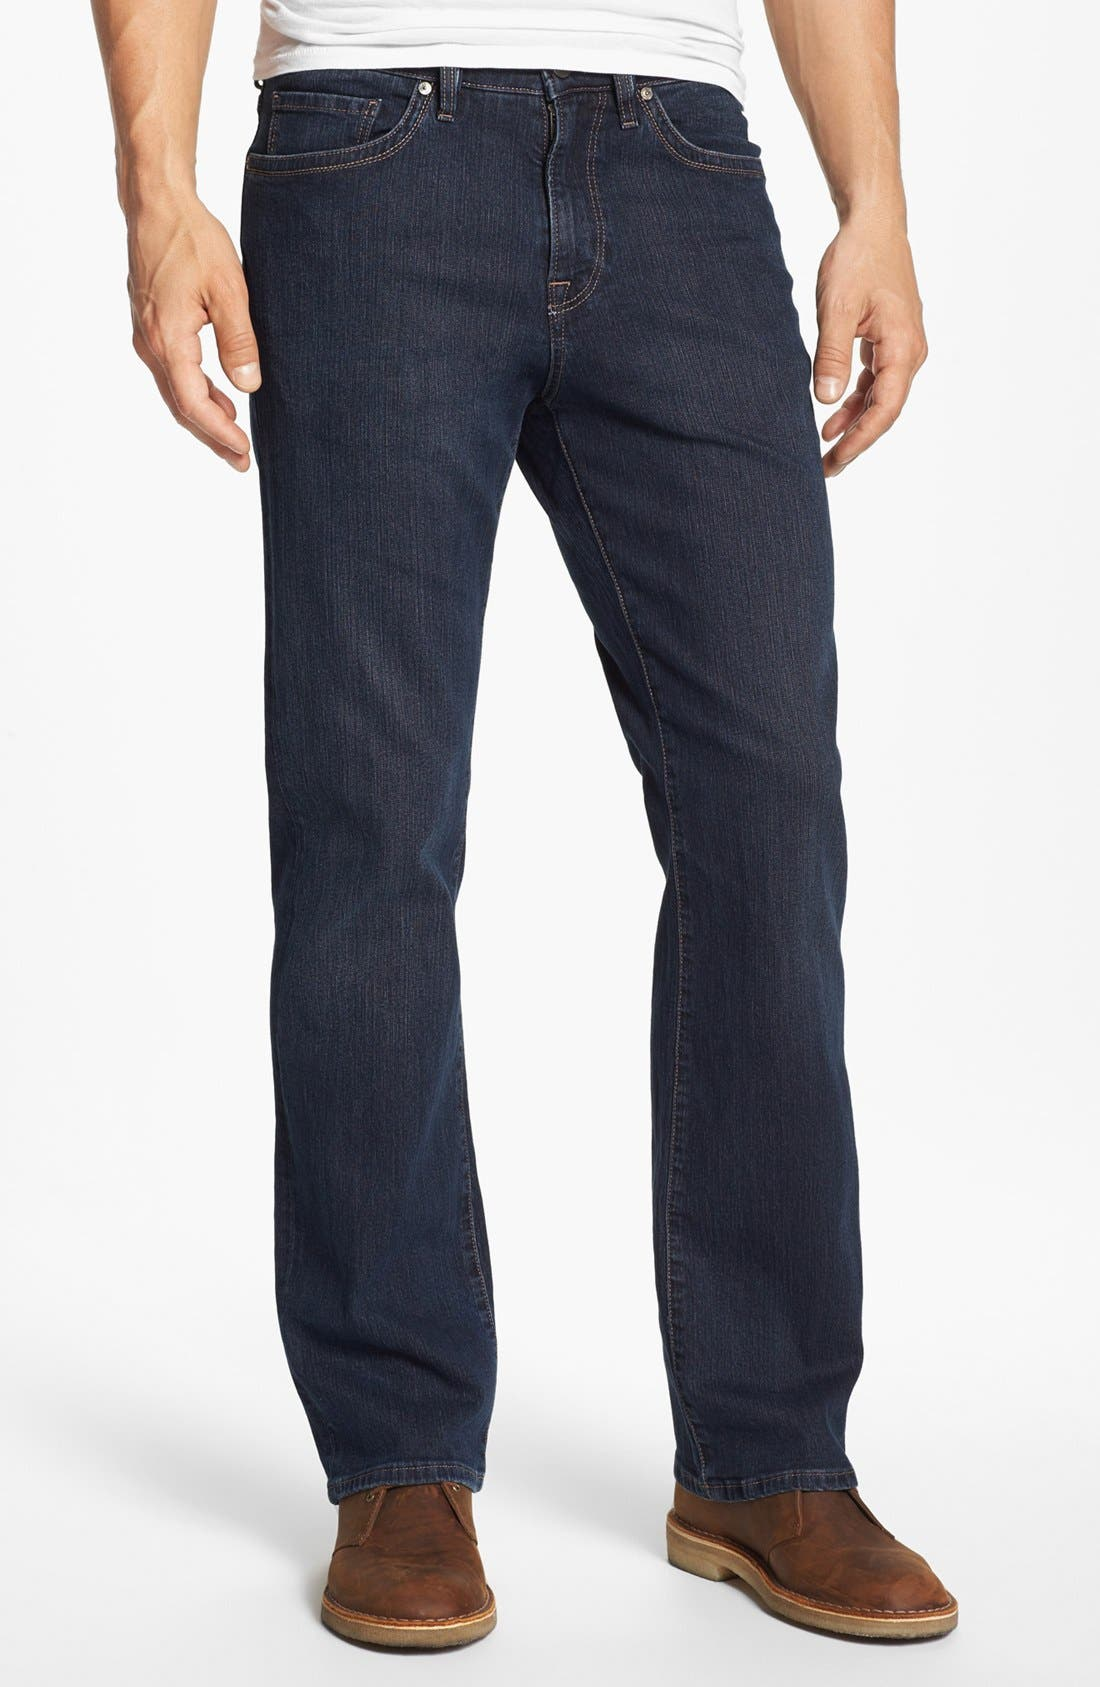 34 HERITAGE,                             Charisma Relaxed Fit Jeans,                             Main thumbnail 1, color,                             DARK COMFORT